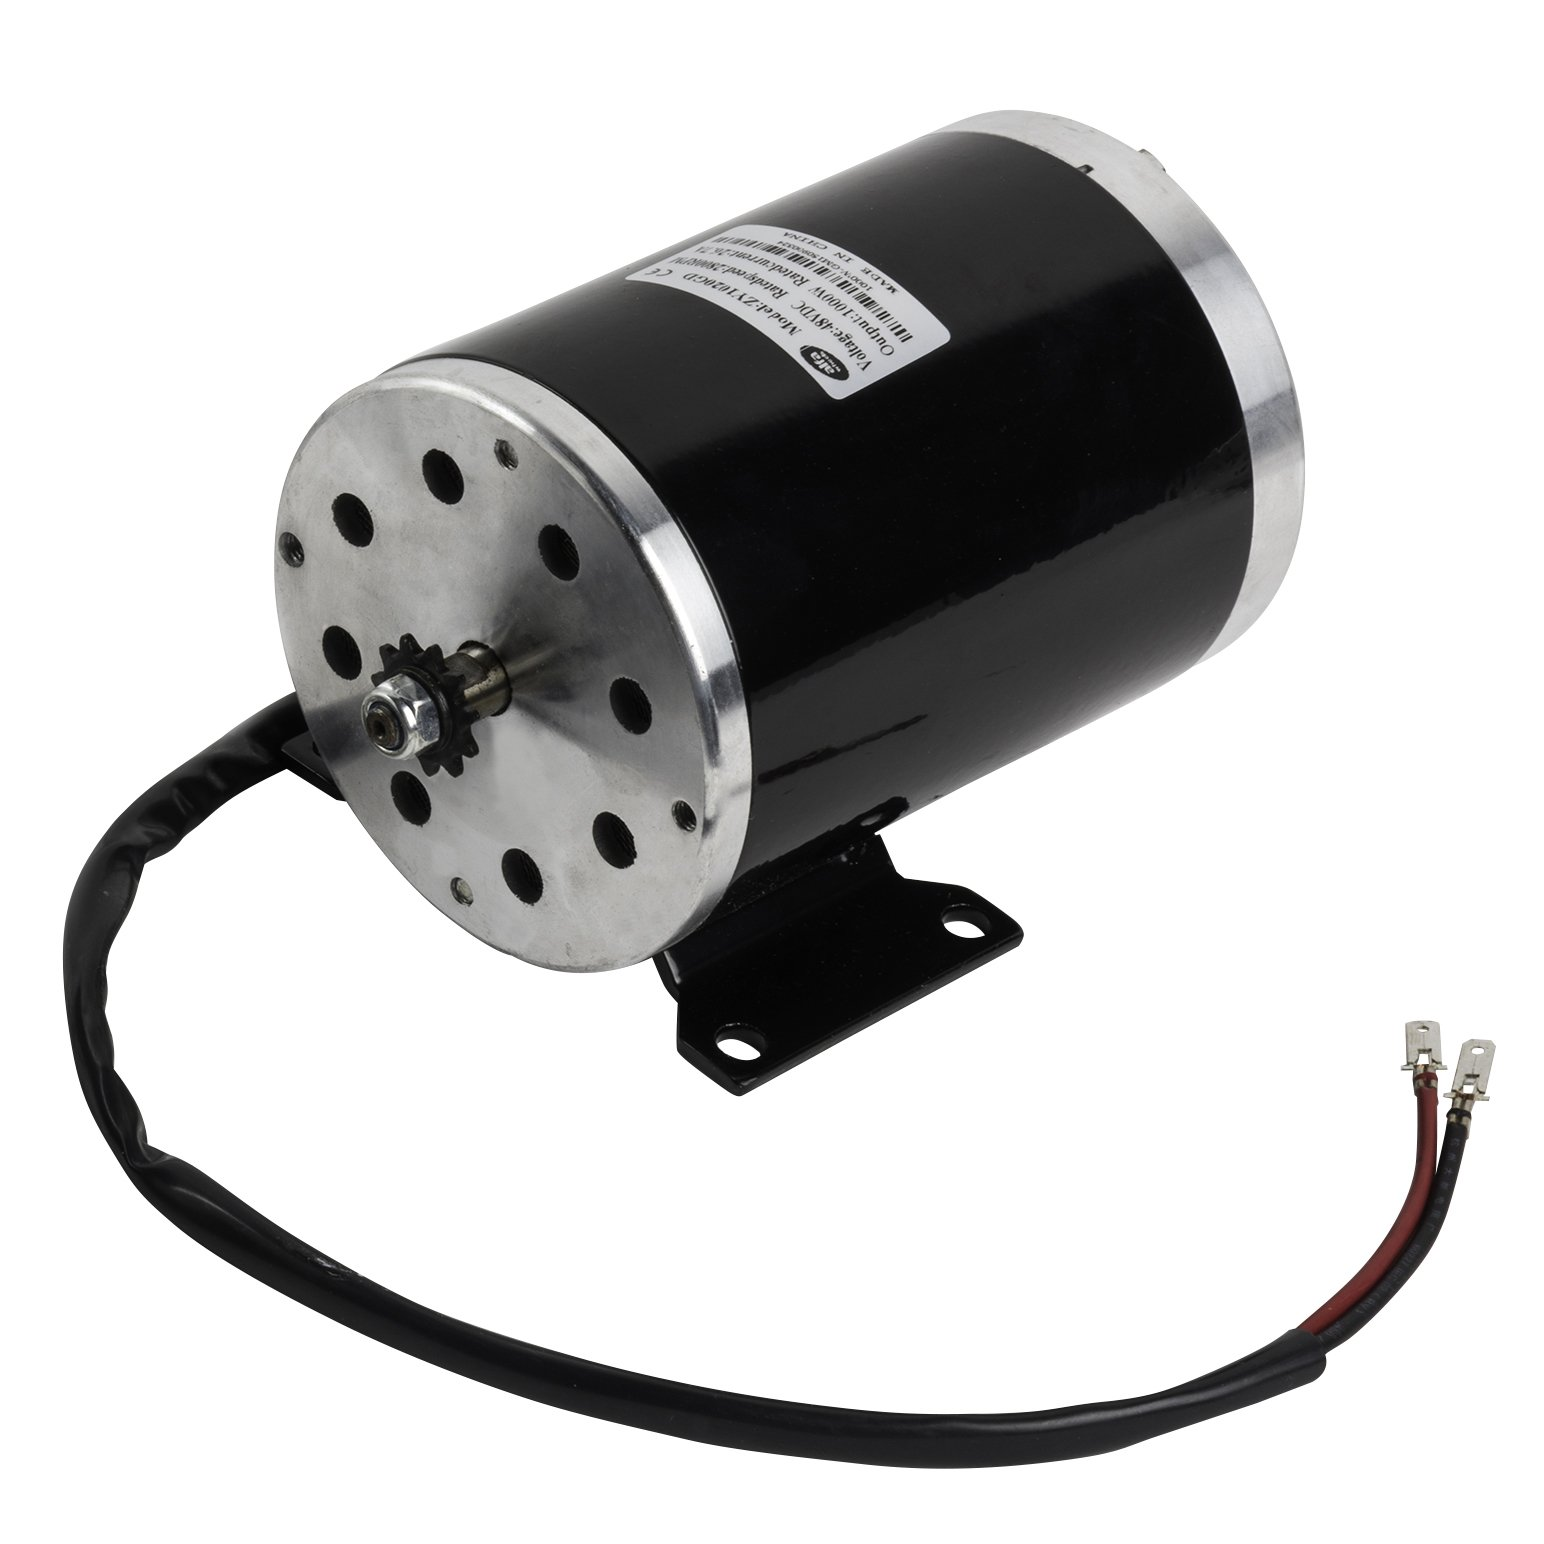 Electric Motor 48 Volt DC 1000 Watt with Base for Scooter Bike Go-kart Mini Bikes Model Numbers MY1020 ZY1020G Reversible with 11 teeth sprocket #25 chain 6.35 pitch